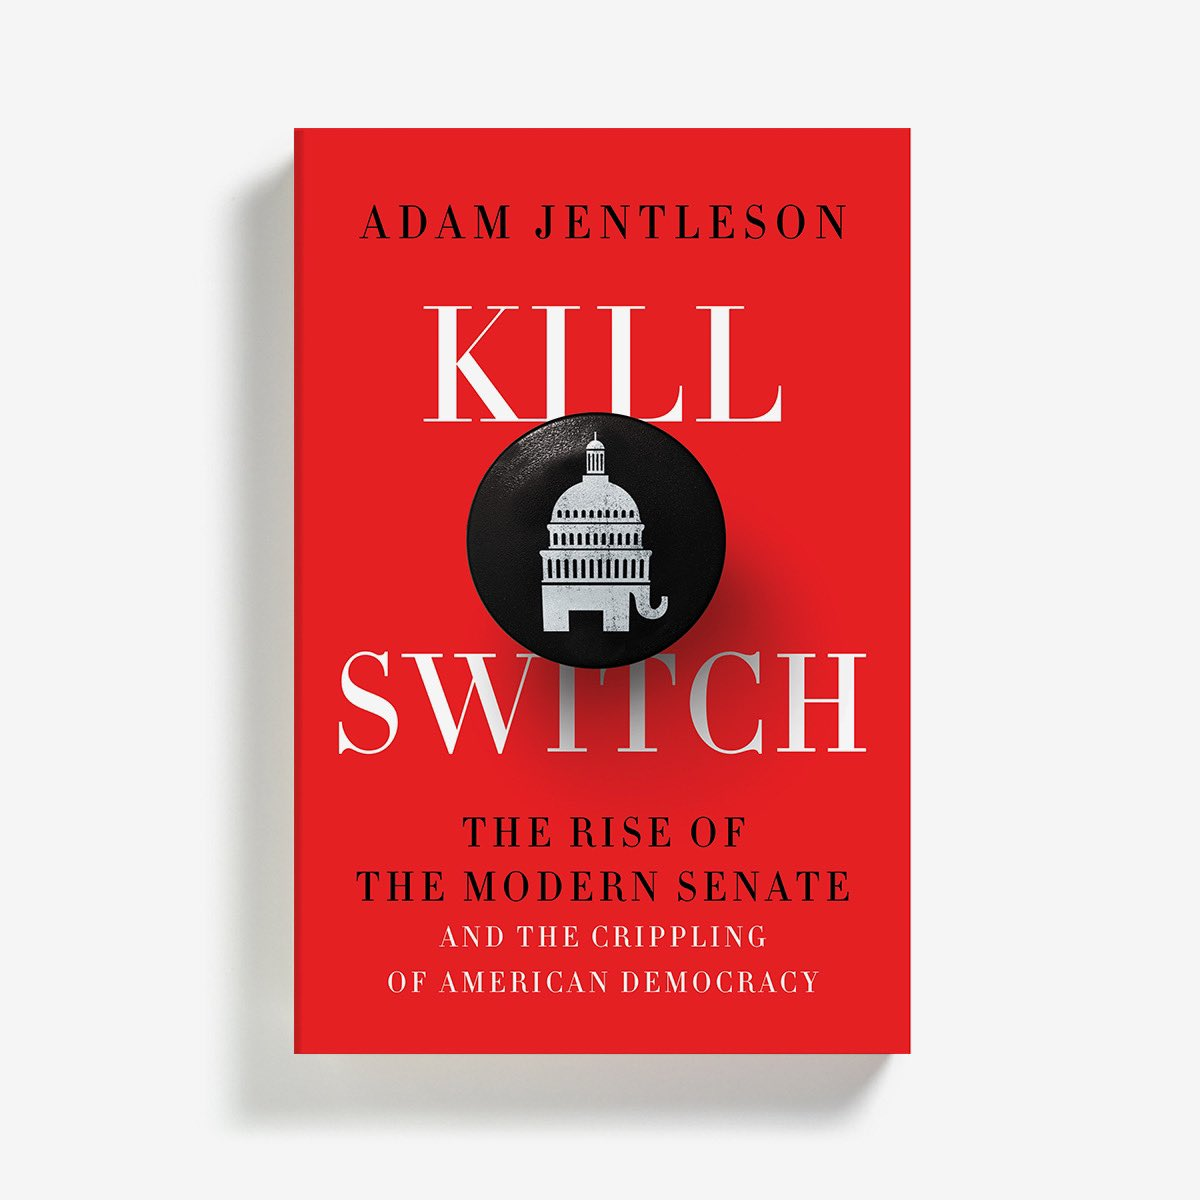 Book's done. White supremacists forged the filibuster, turned it into a supermajority threshold and convinced America the Senate was meant to be this way. Now a minority of white conservatives uses it to impose their will on America. Pre-order if you like: